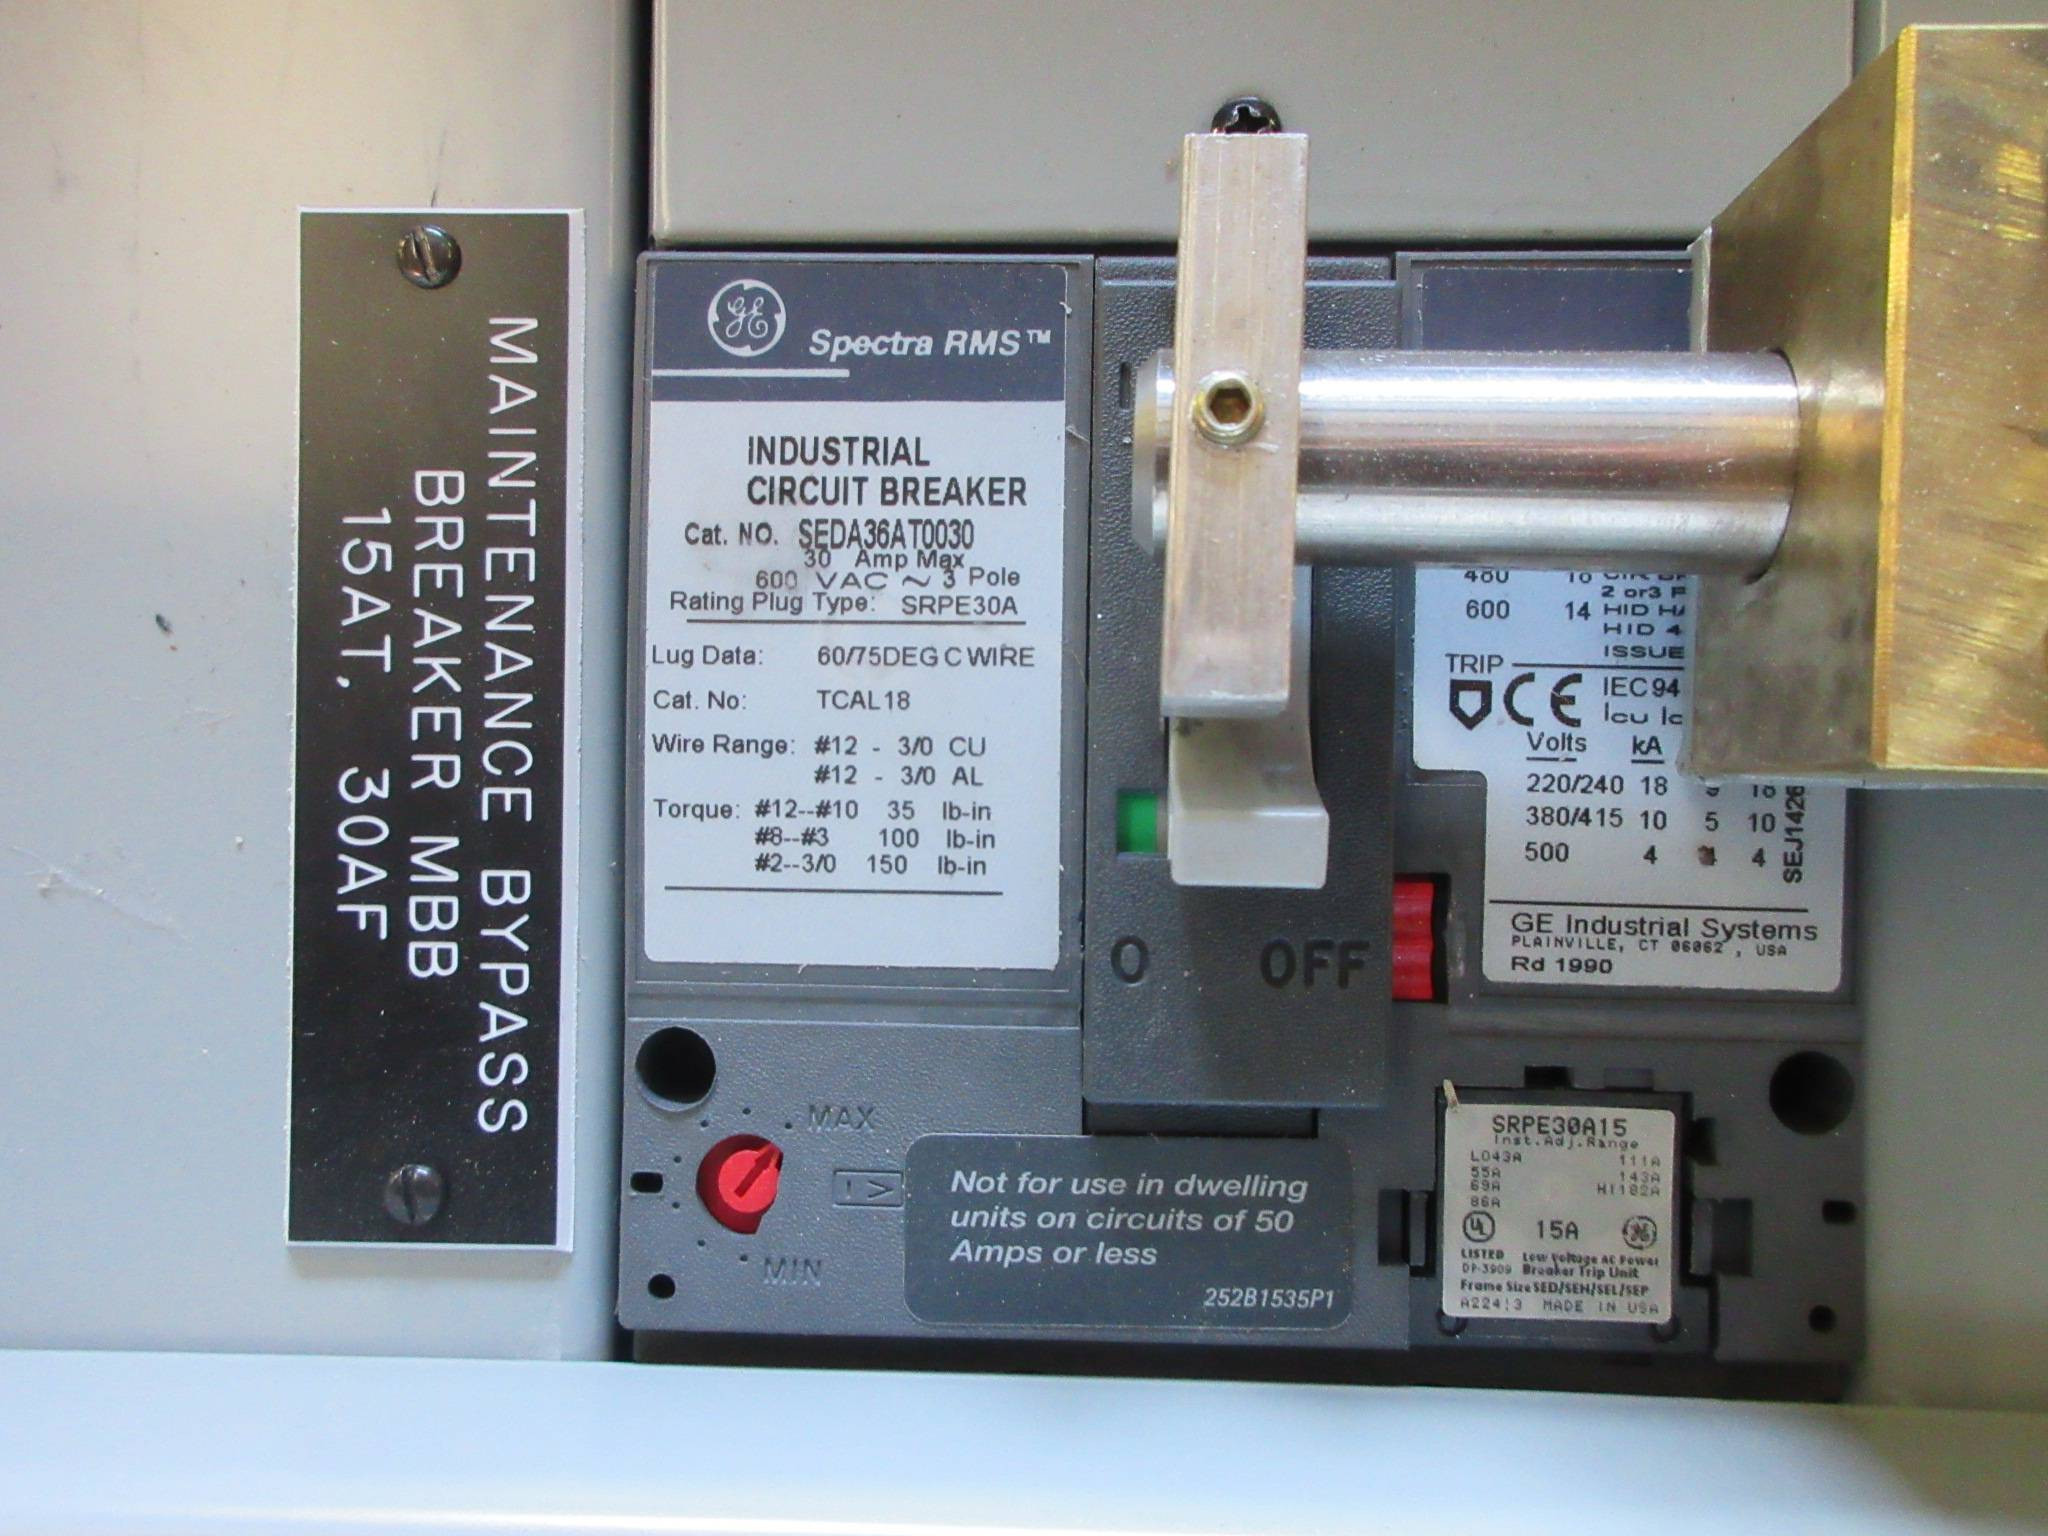 ge spectra new scp plus ups maintenance bypass panelboard 30 ampge spectra new scp plus ups maintenance bypass panelboard 30 amp 480y 277v 3p 4w (tk2697 1) river city industrial